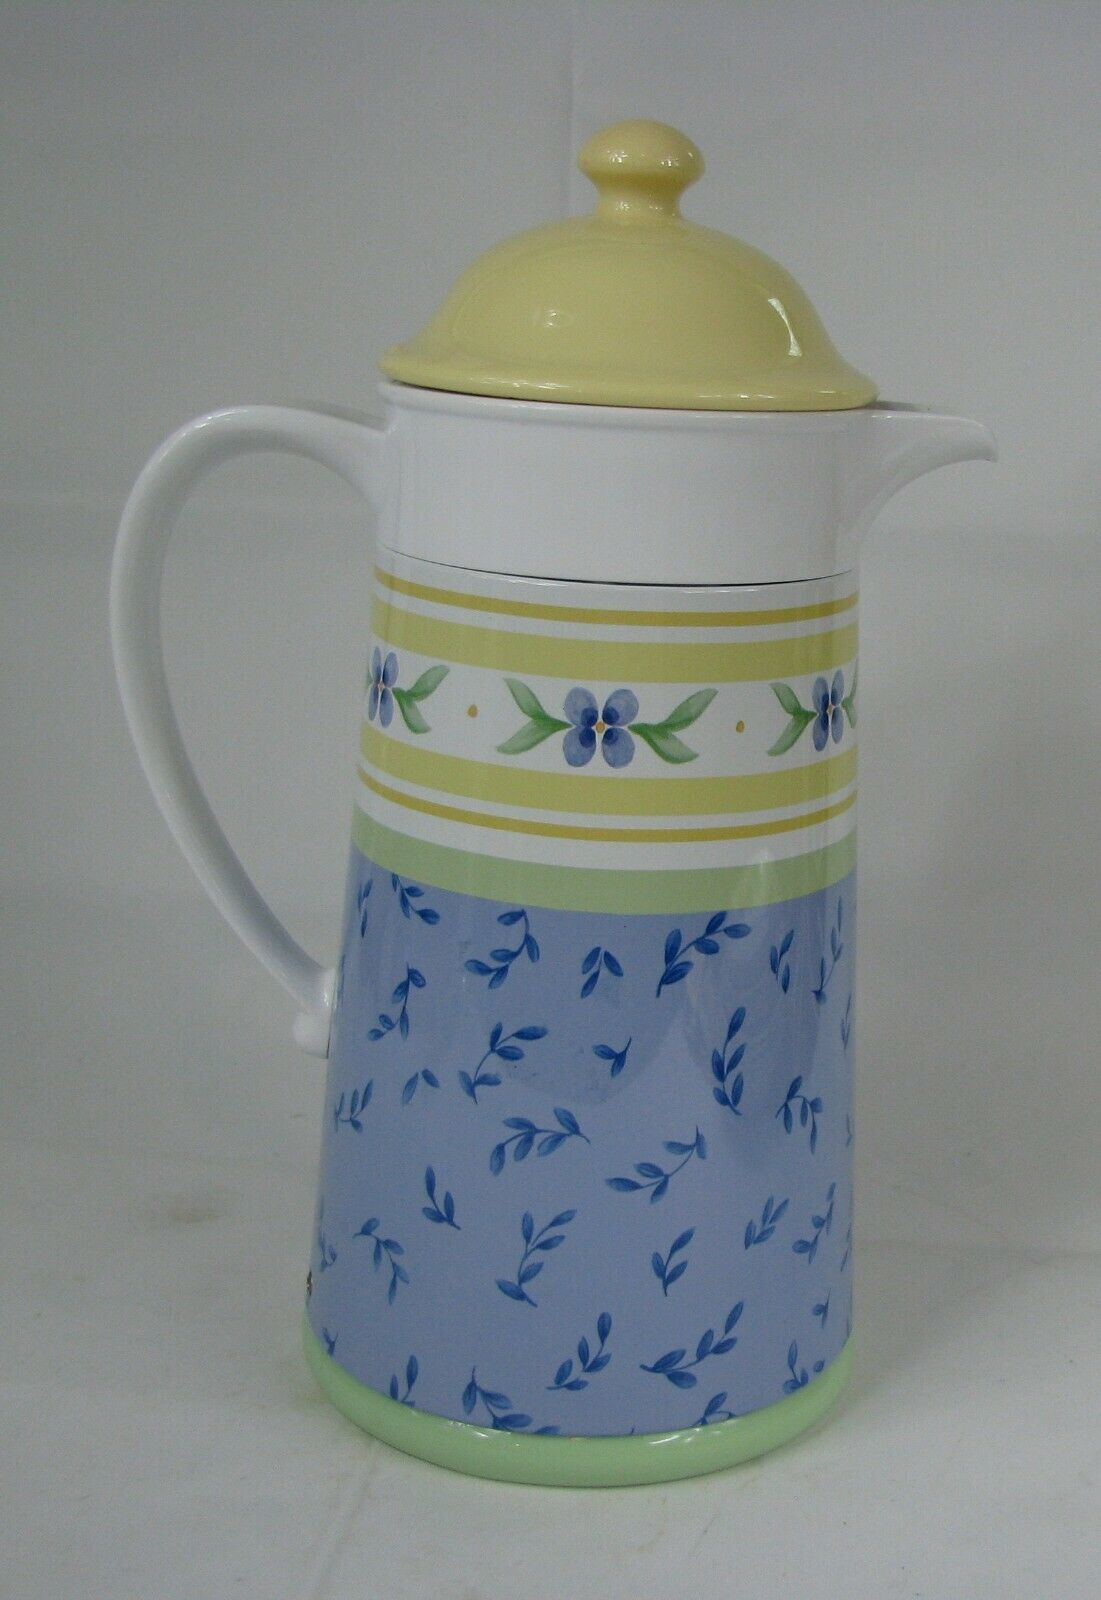 Pfaltzgraff Summer Breeze Thermal Insulated Coffee Beverage Serving Carafe - $23.75